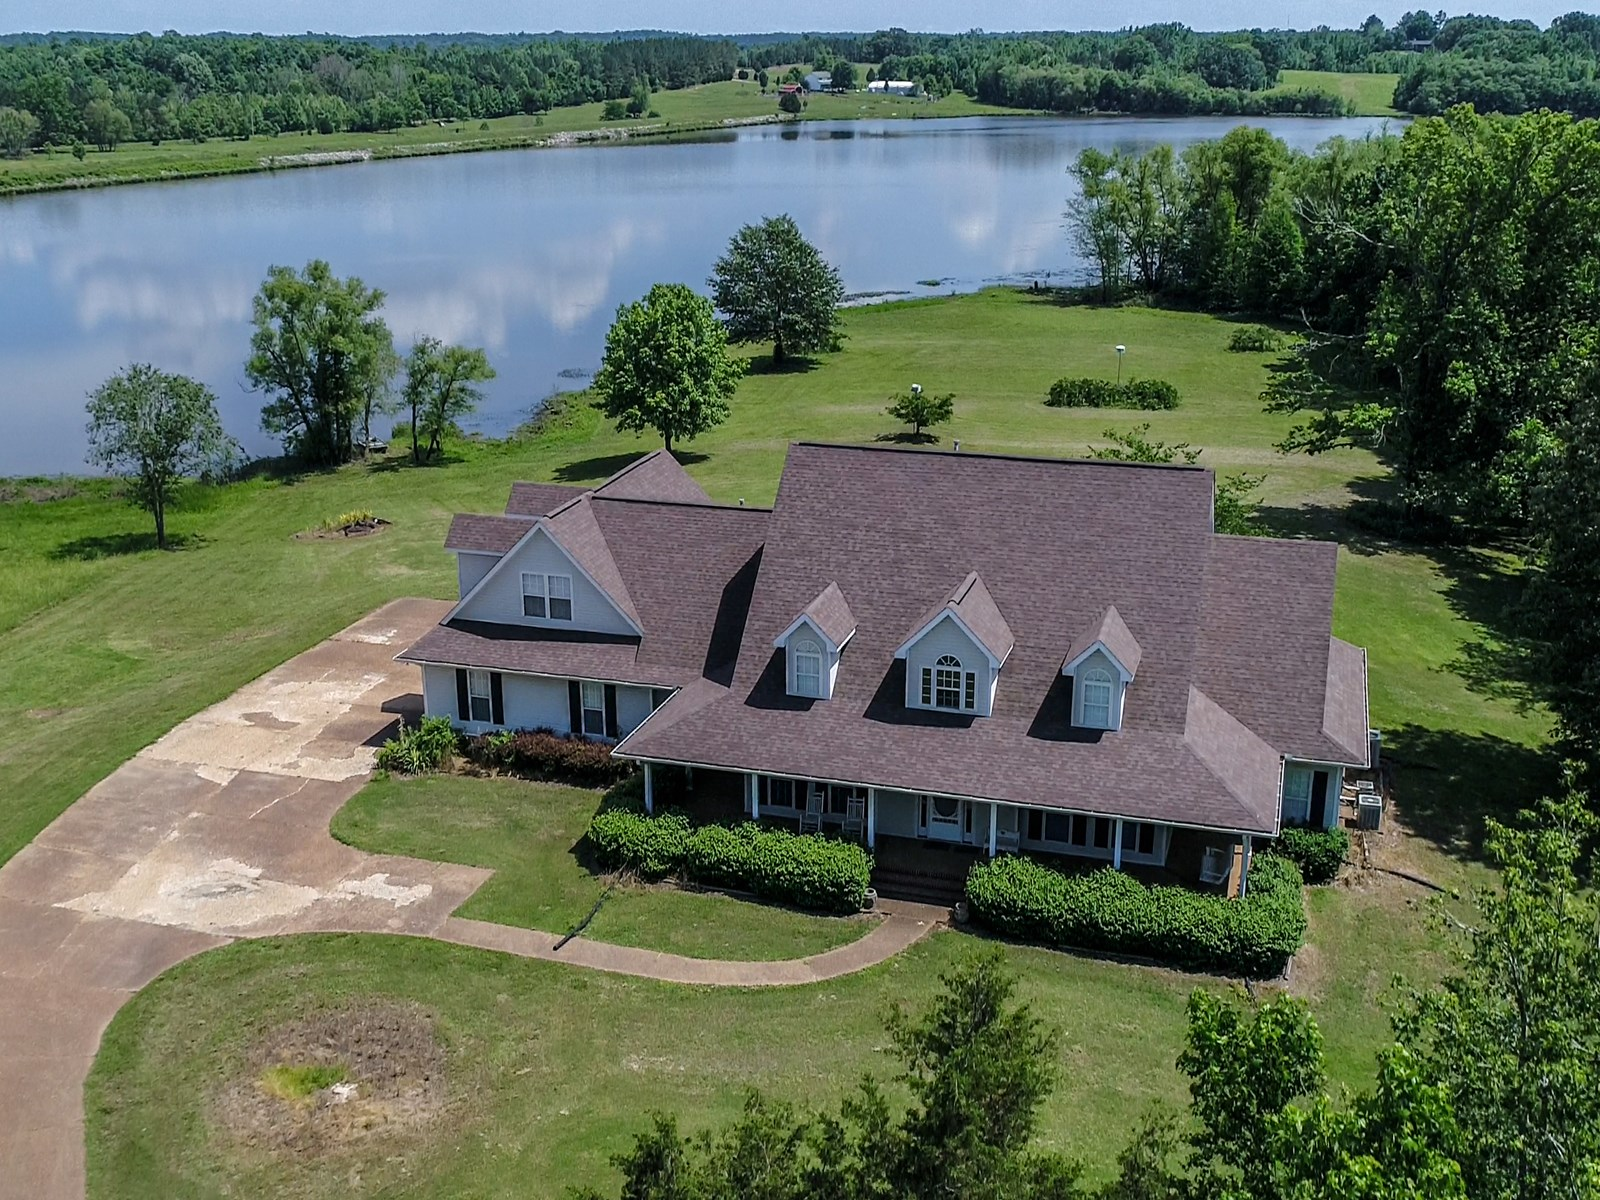 LAKE FRONT HOME IN TN WITH ACREAGE, PASTURE, NO RESTRICTIONS